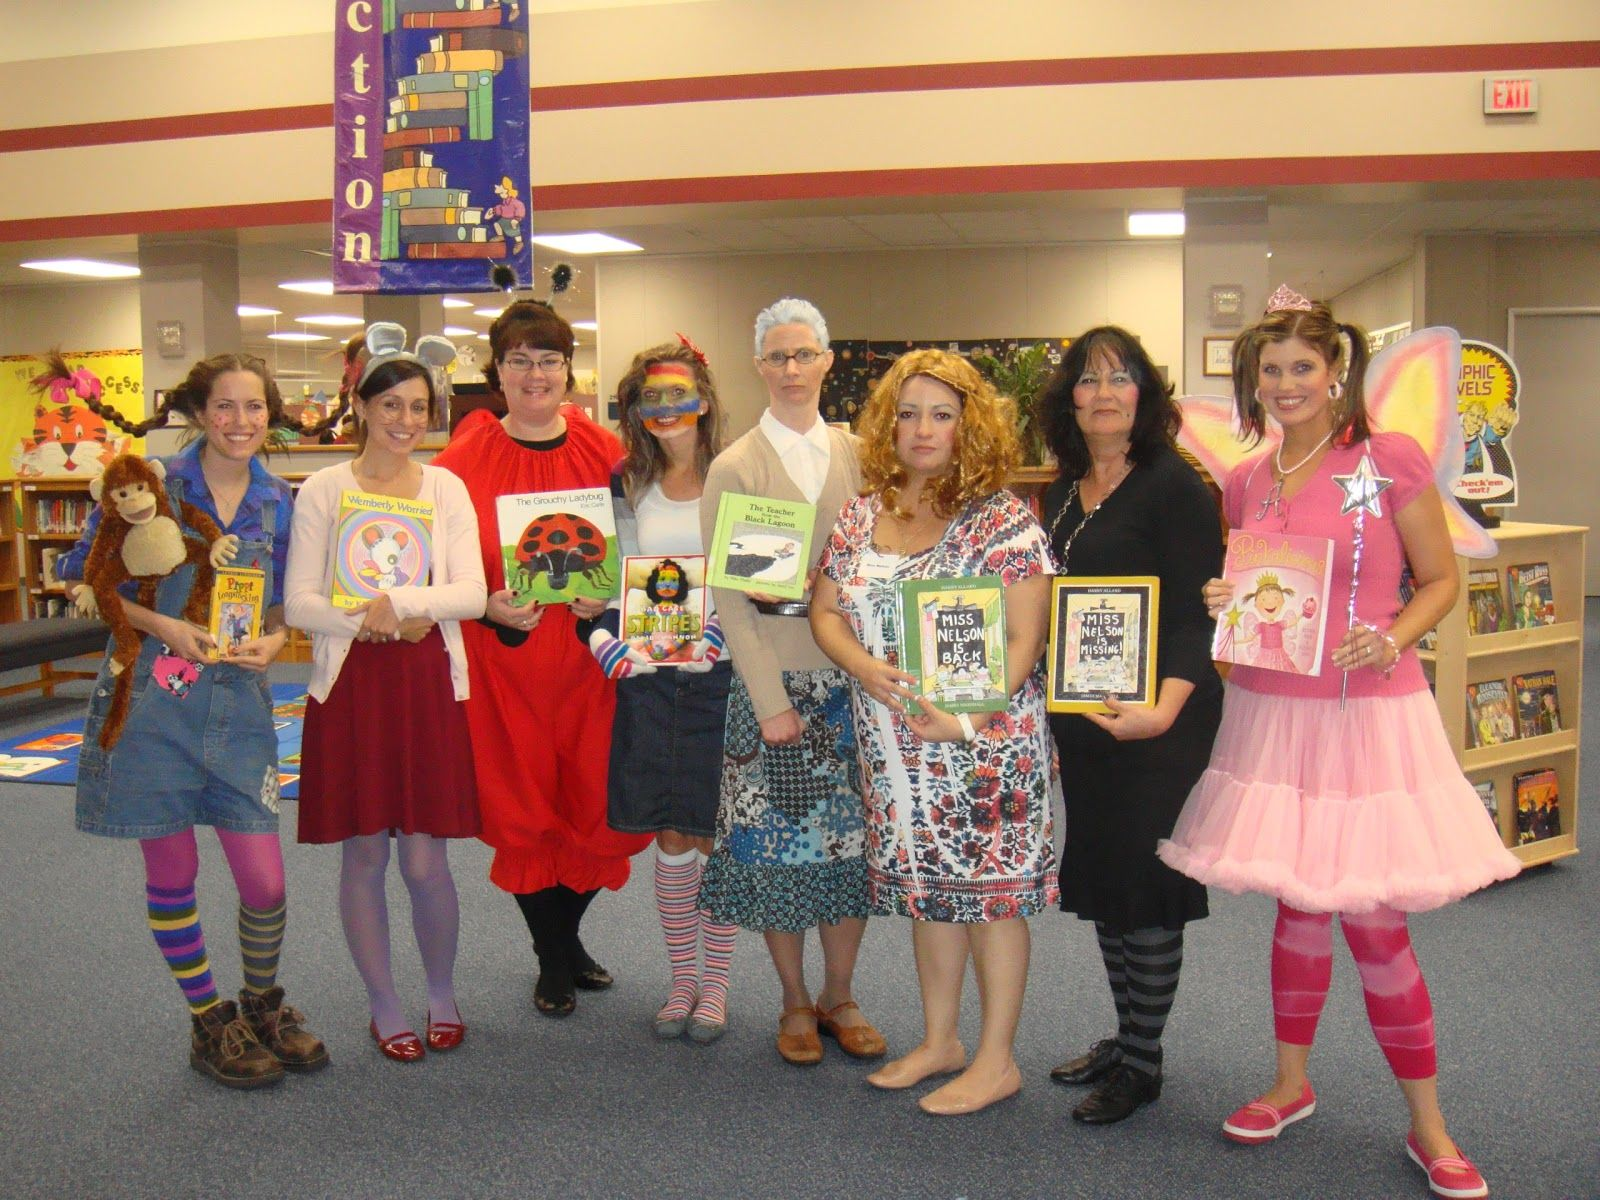 The K Passmore Family Book Character Day Book Character Day Teacher Costumes Book Characters Dress Up